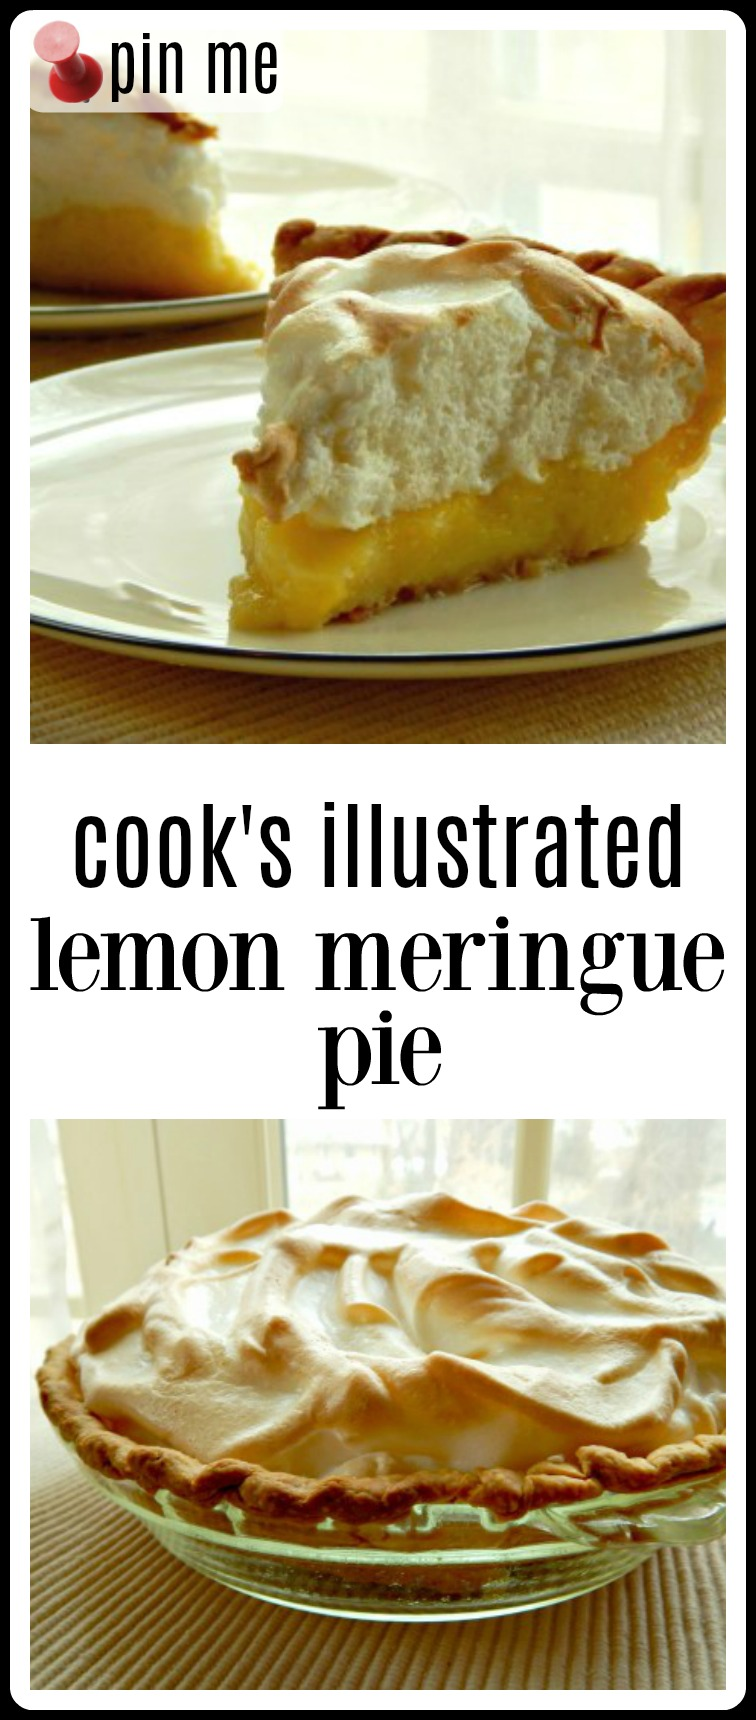 Cook's Illustrated Lemon Meringue Pie is the pinnacle of pie perfection! Seriously, everyone RAVES about this pie! Even people who say they don't like Lemon Meringue Pie gush on and on about it. Just say thanks and hand them the recipe! #Lemon Meringue Pie #Cook's Illustrated Lemon Meringue Pie